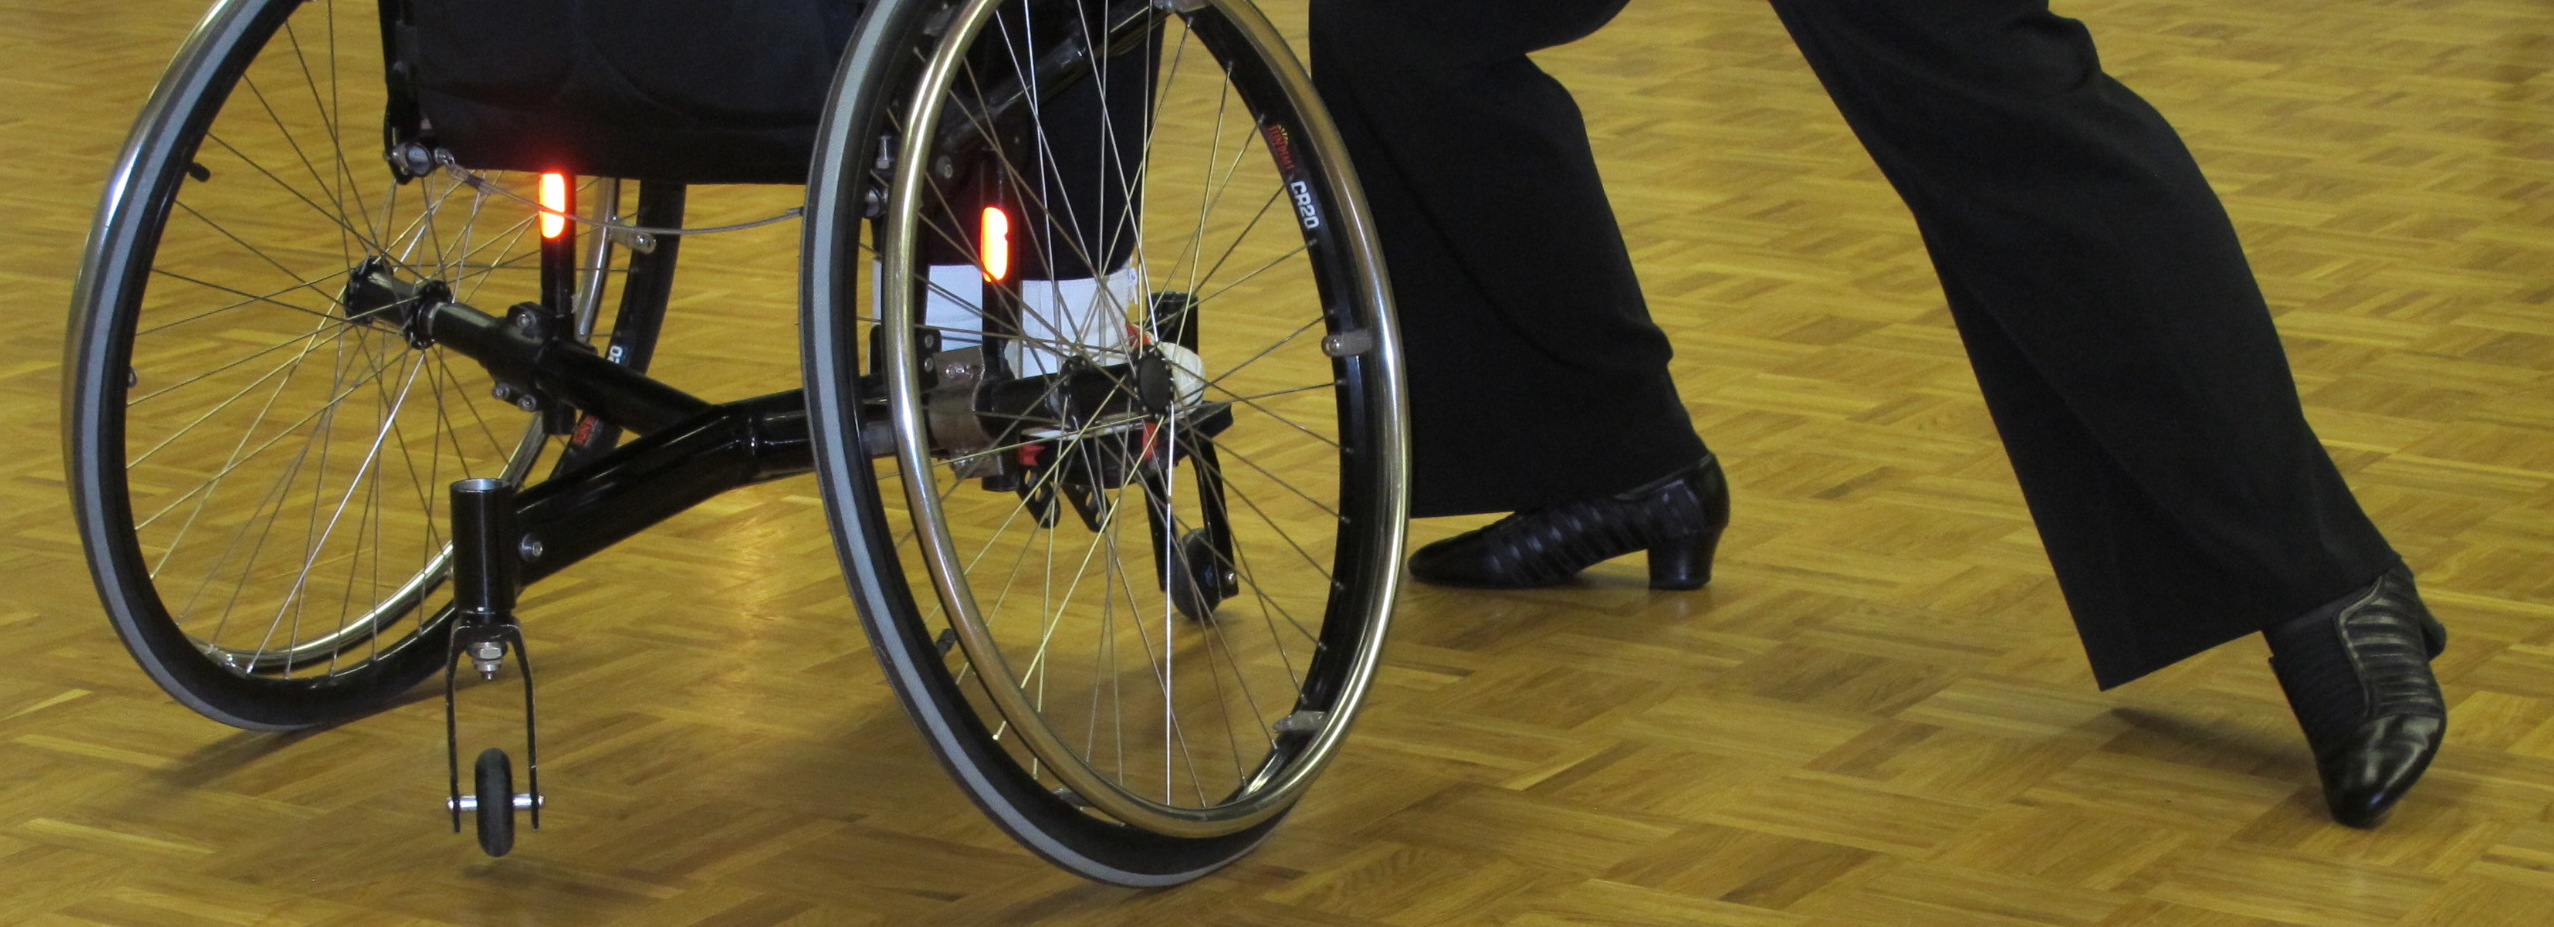 Wheelchairdance